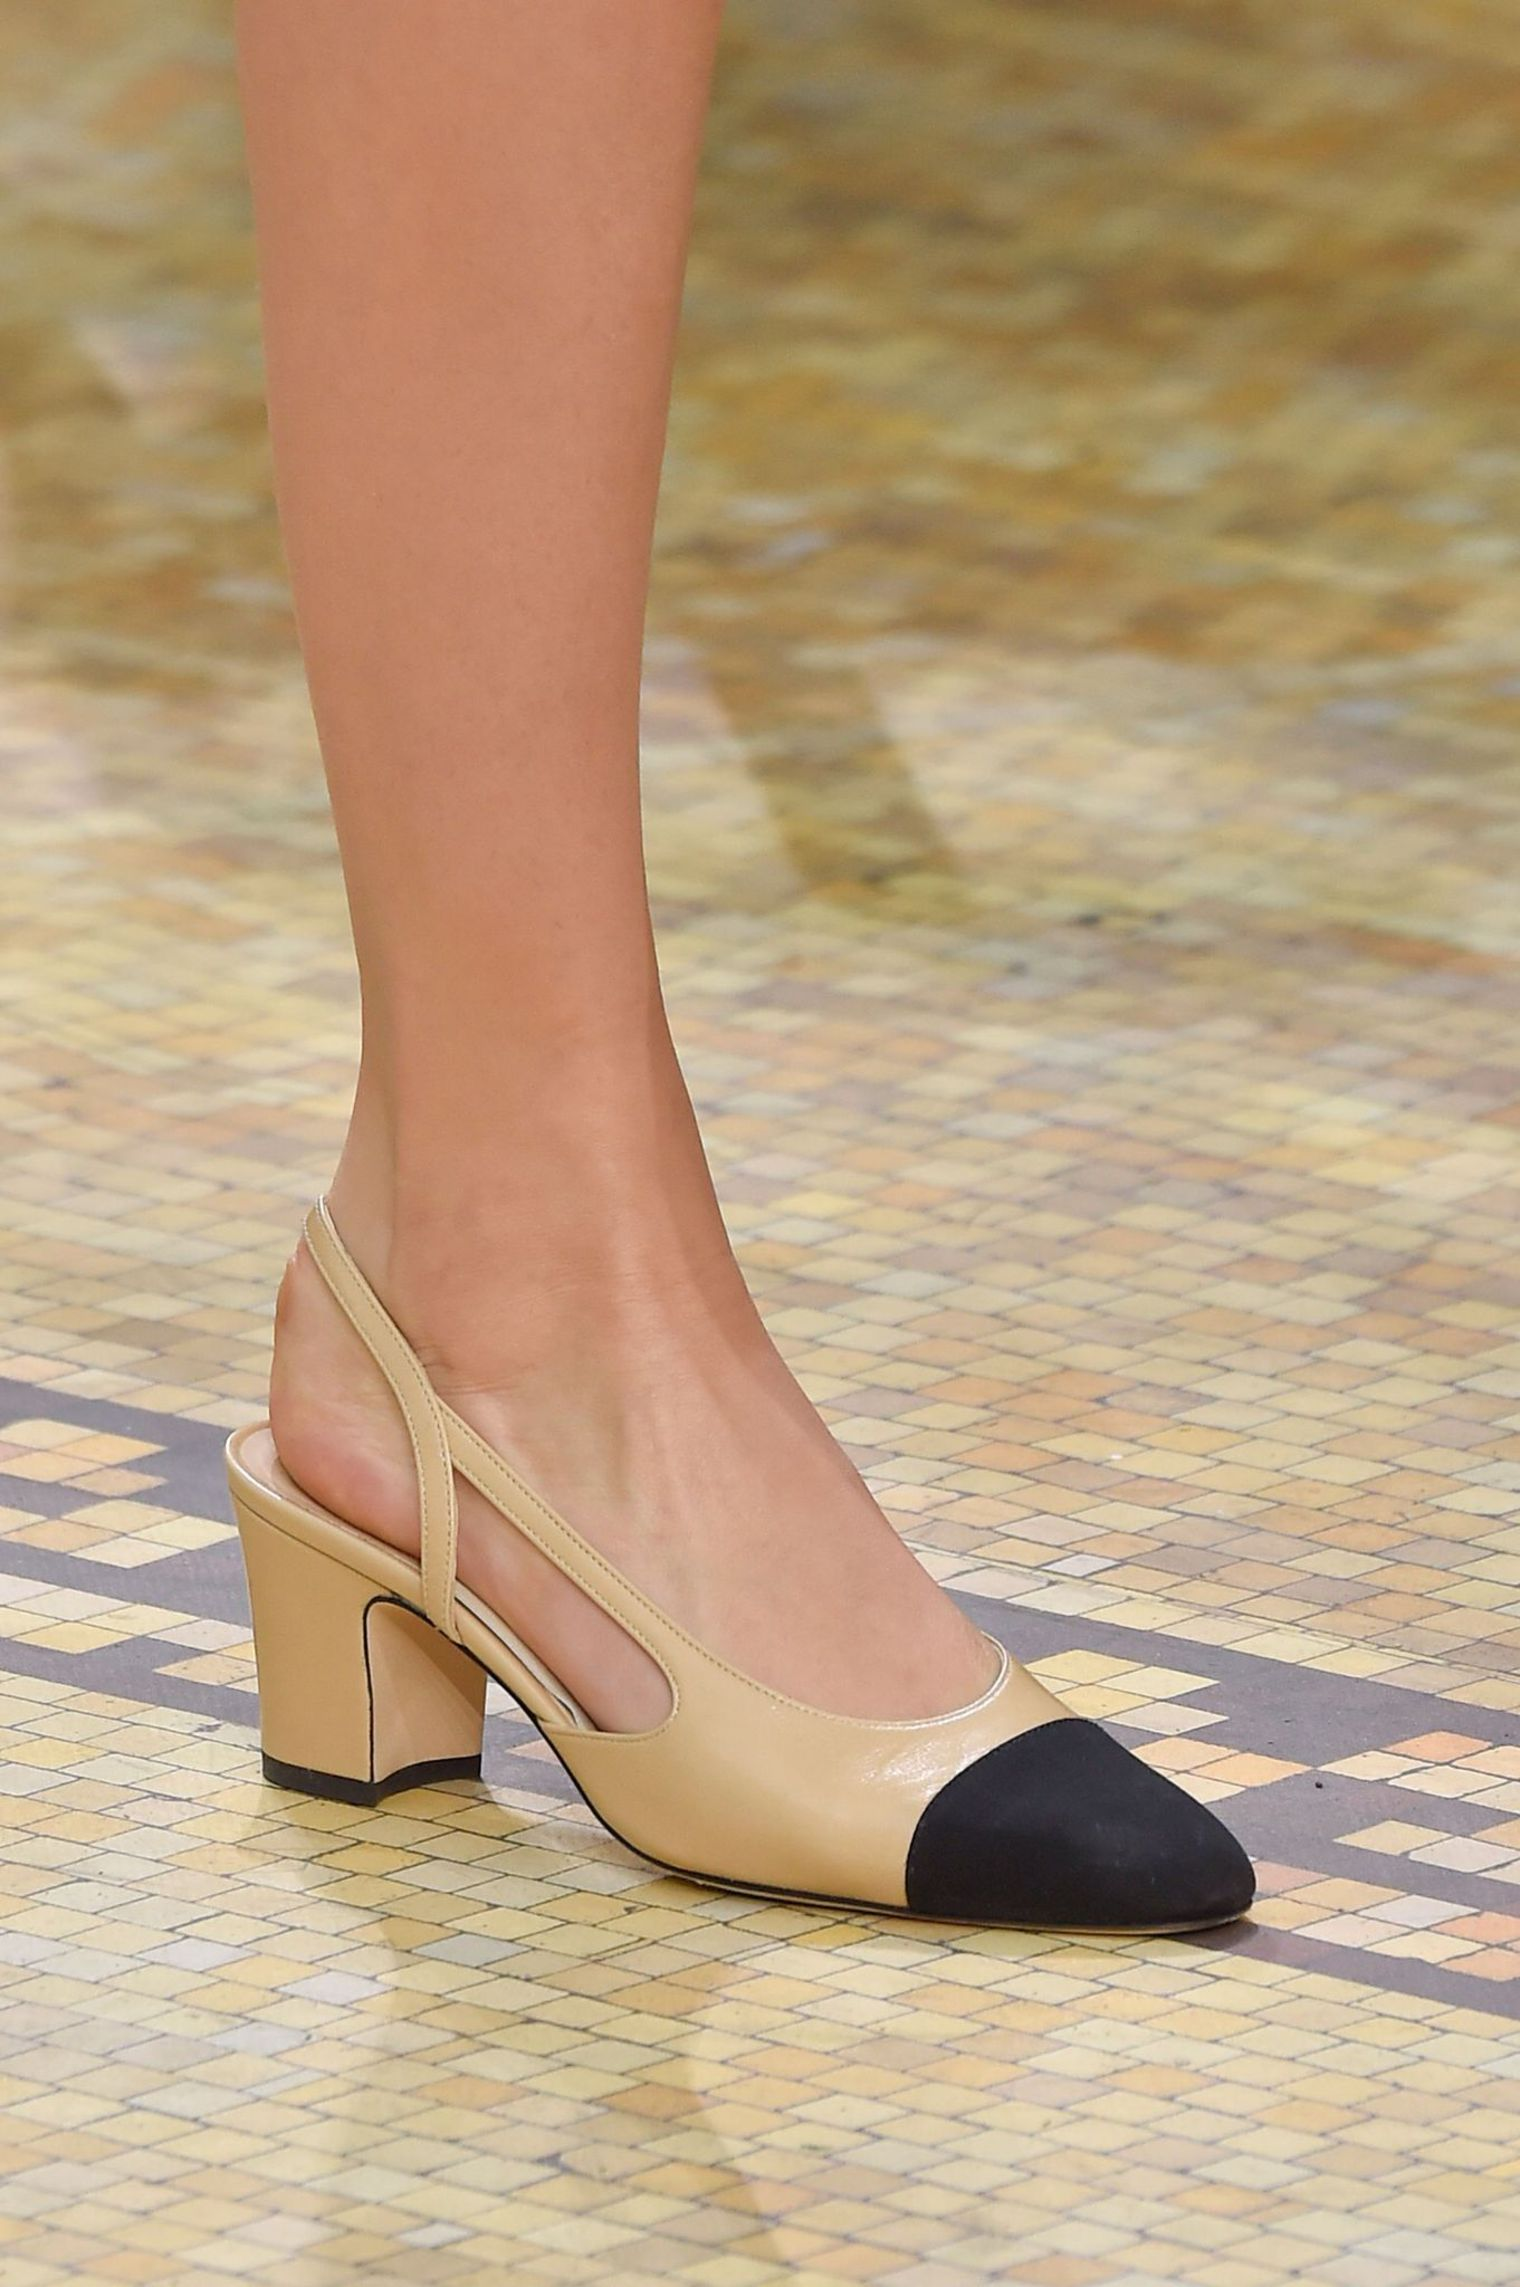 1809a9f865d les chaussure chanel